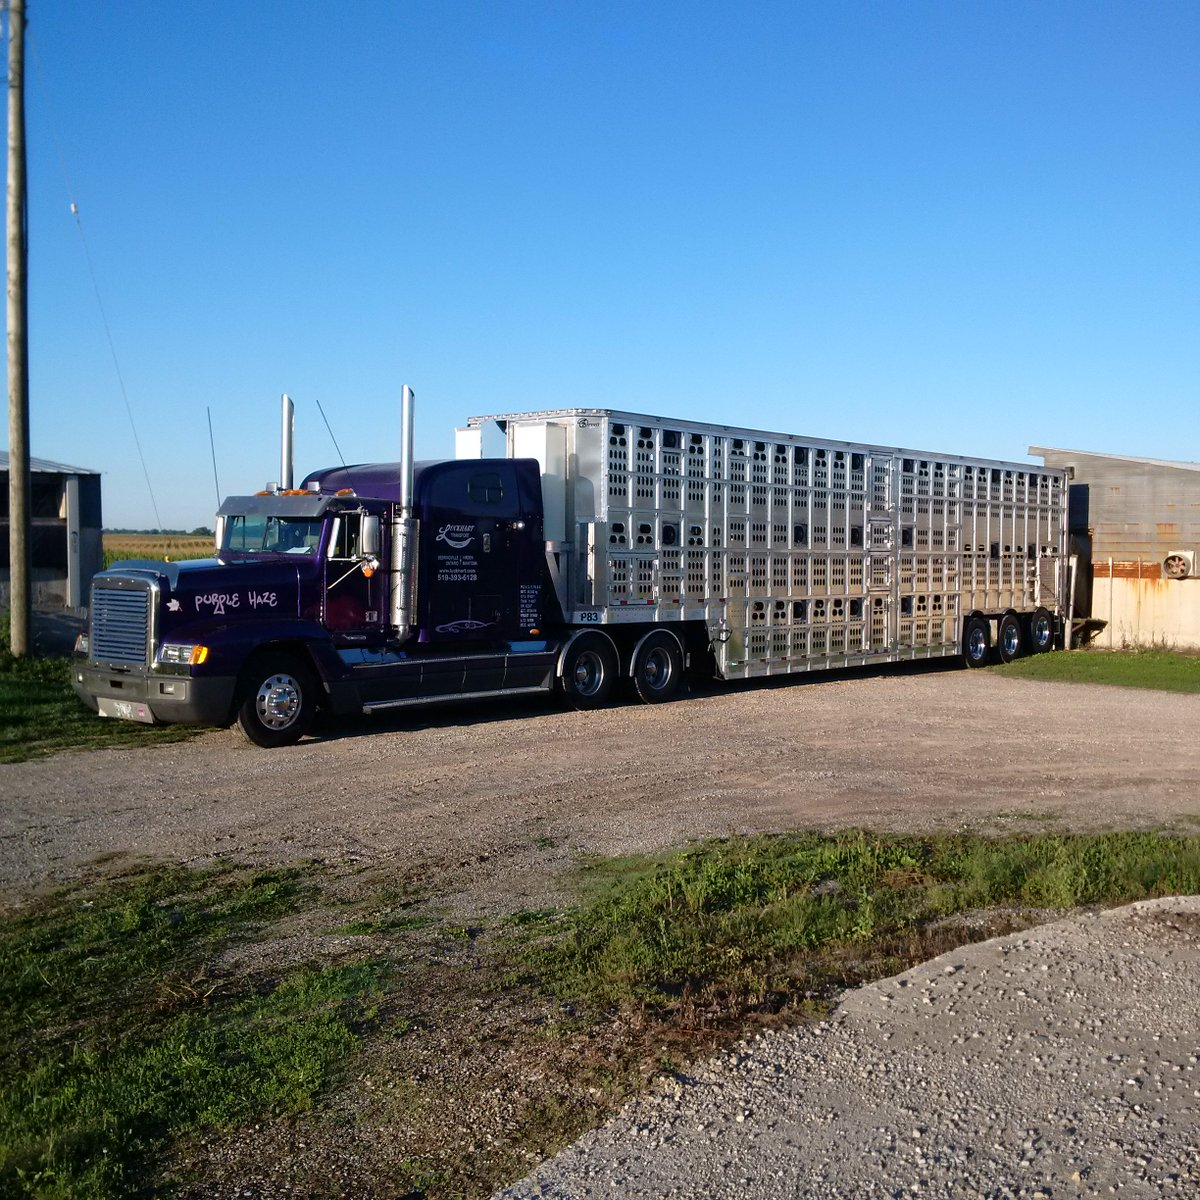 luckhart transport sur twitter the barrett prototype 3 deck tri axle trailer loading it s first load fans misting system and drinkers on board twitter